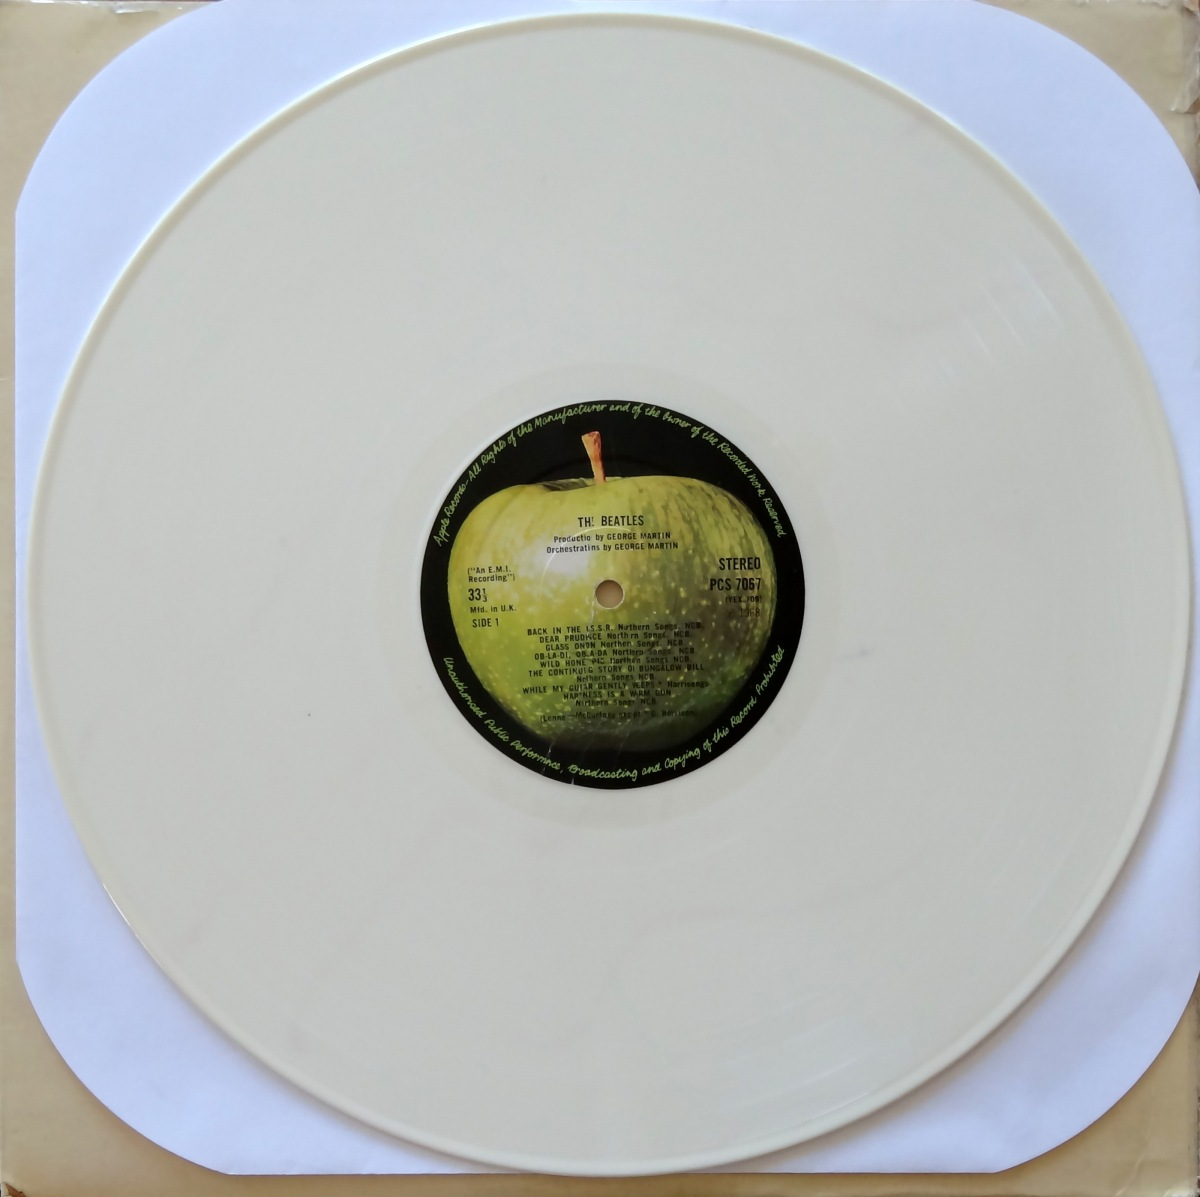 From The Stacks: The Beatles, 'White Album' (White Vinyl)